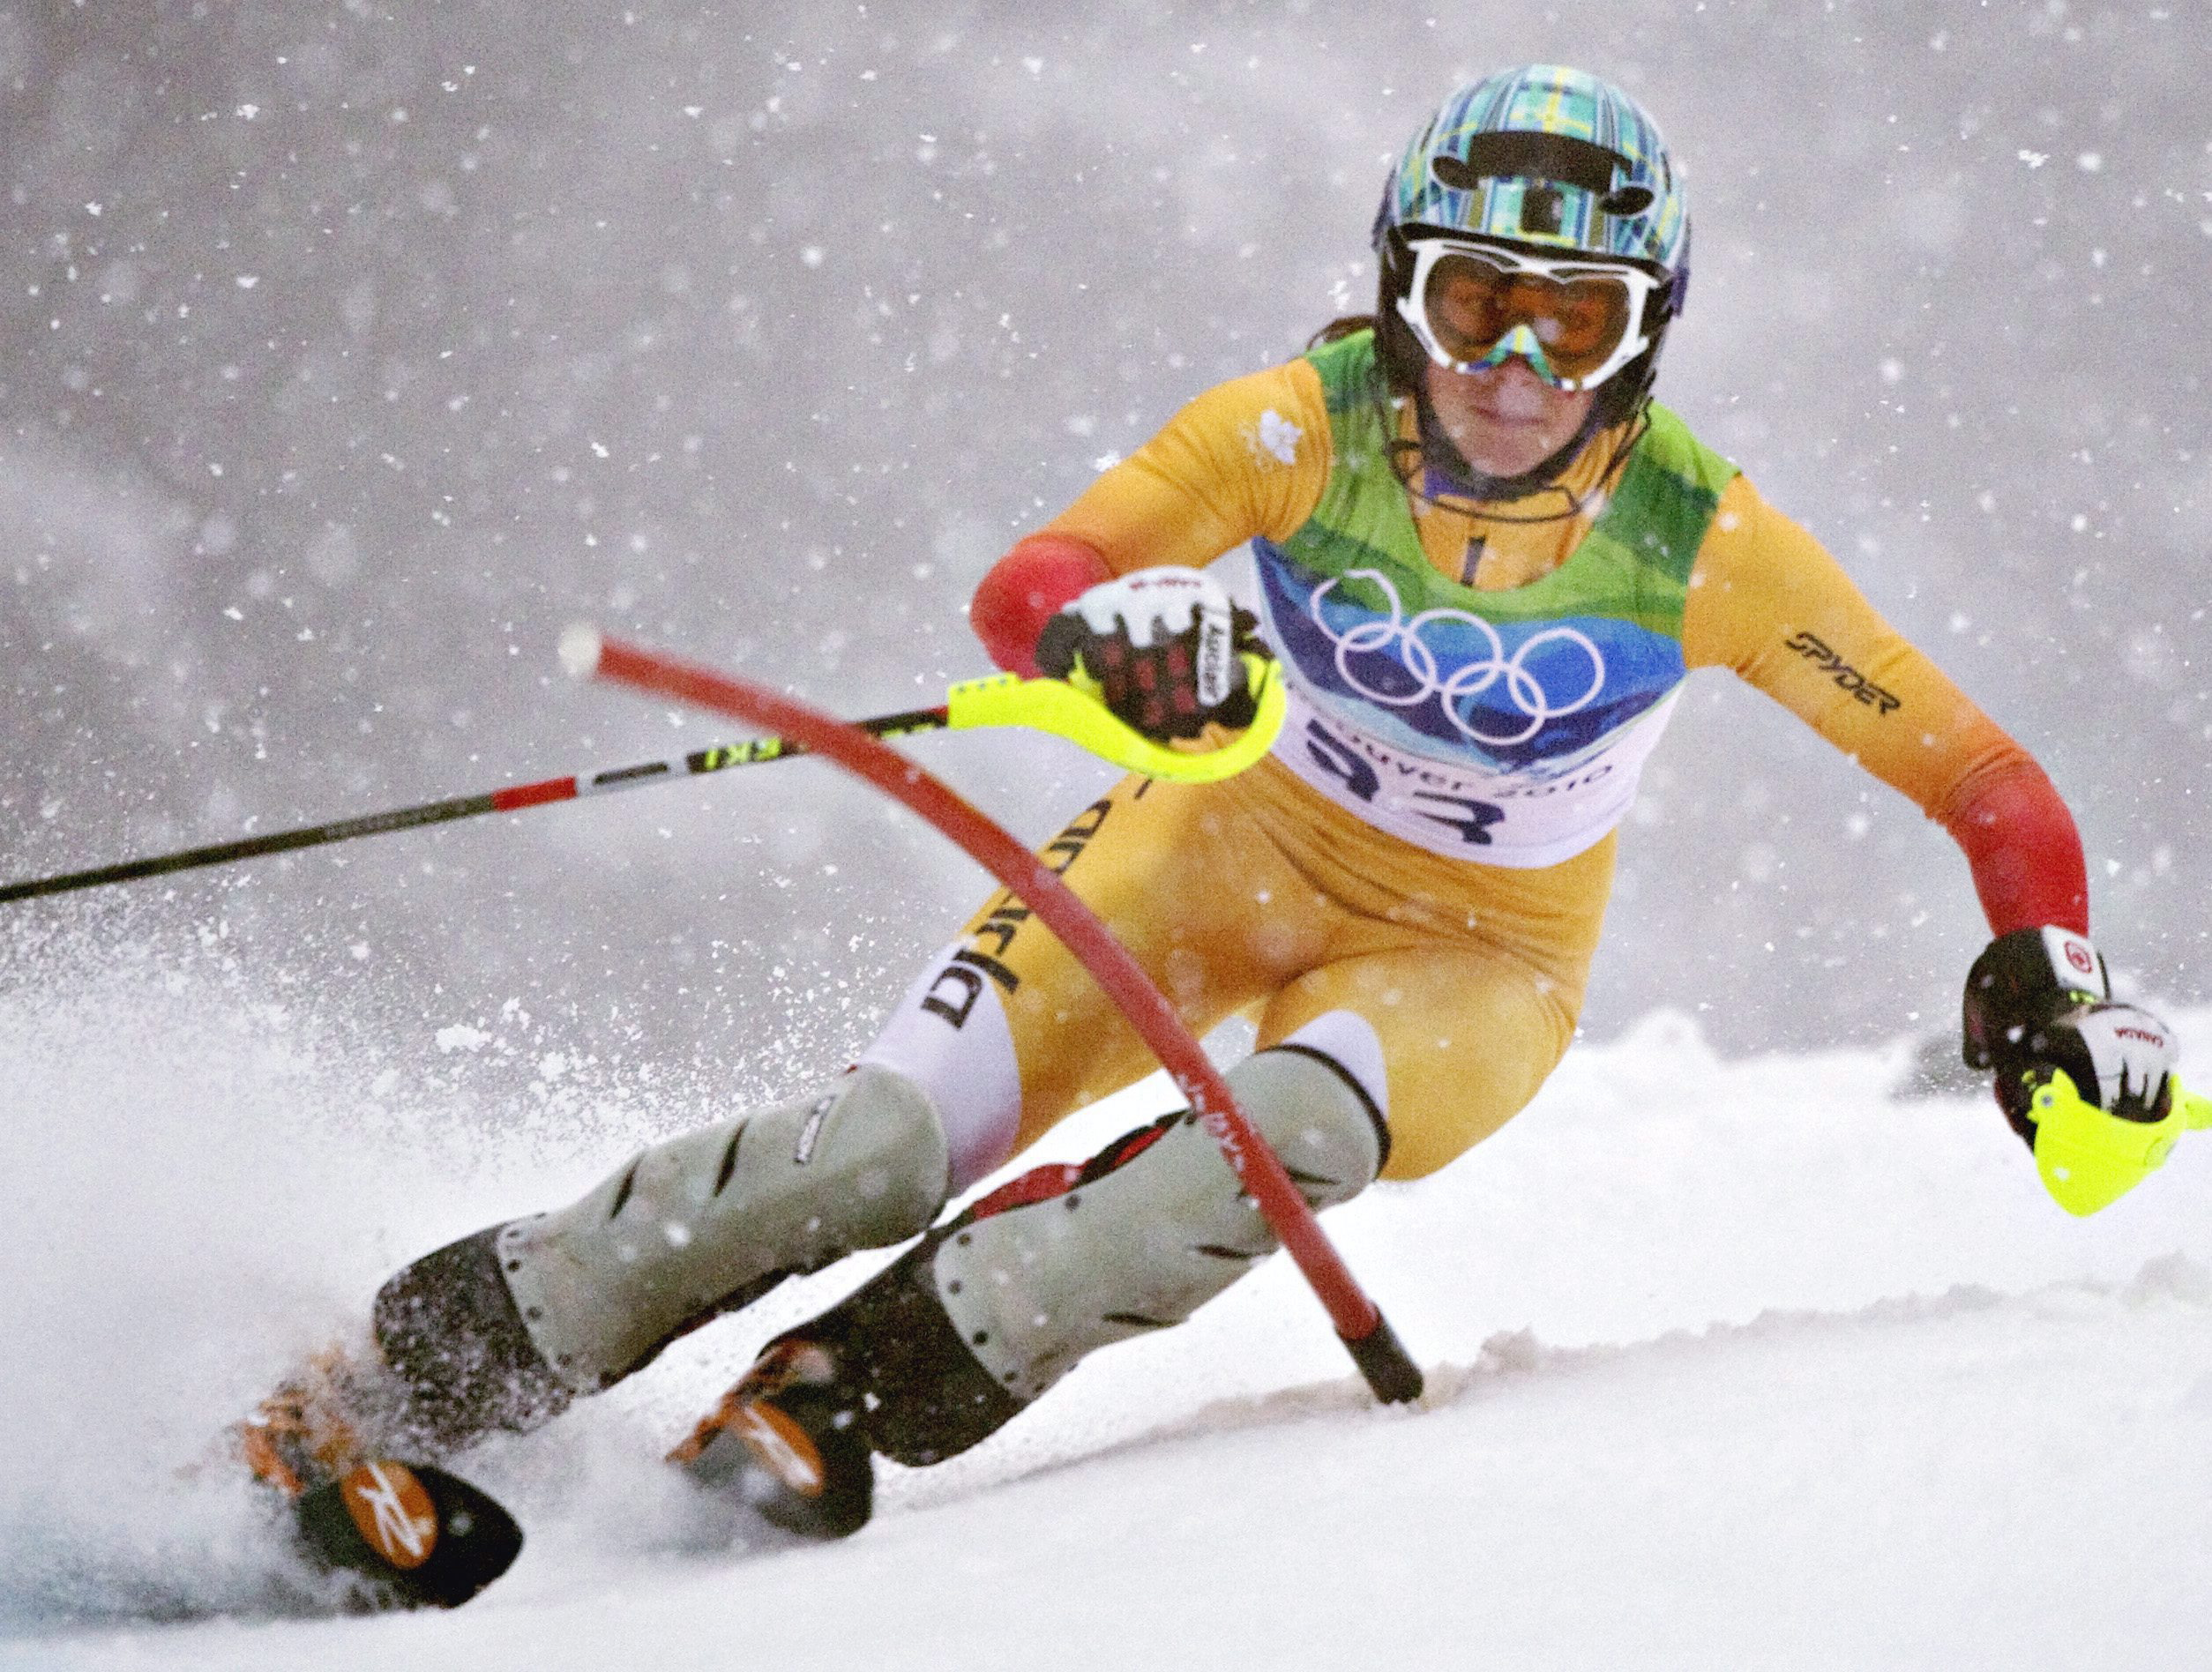 An alpine skier goes around a slalom gate